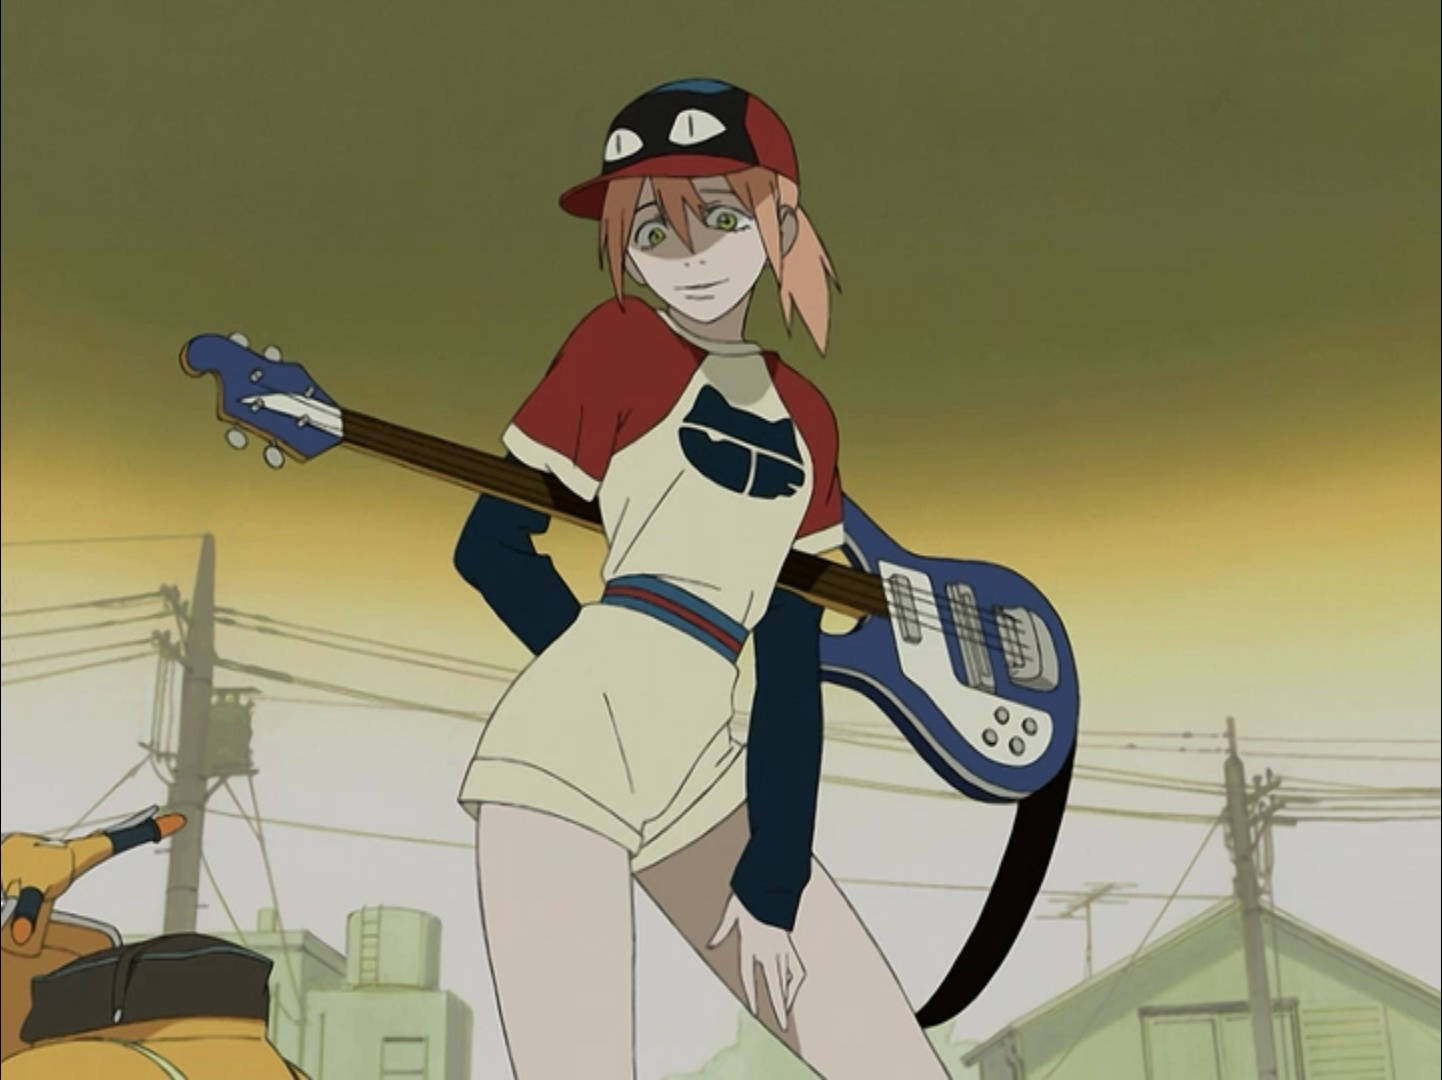 Haruko In Relaxed Pose Holding Her Bass Ready For Baseball